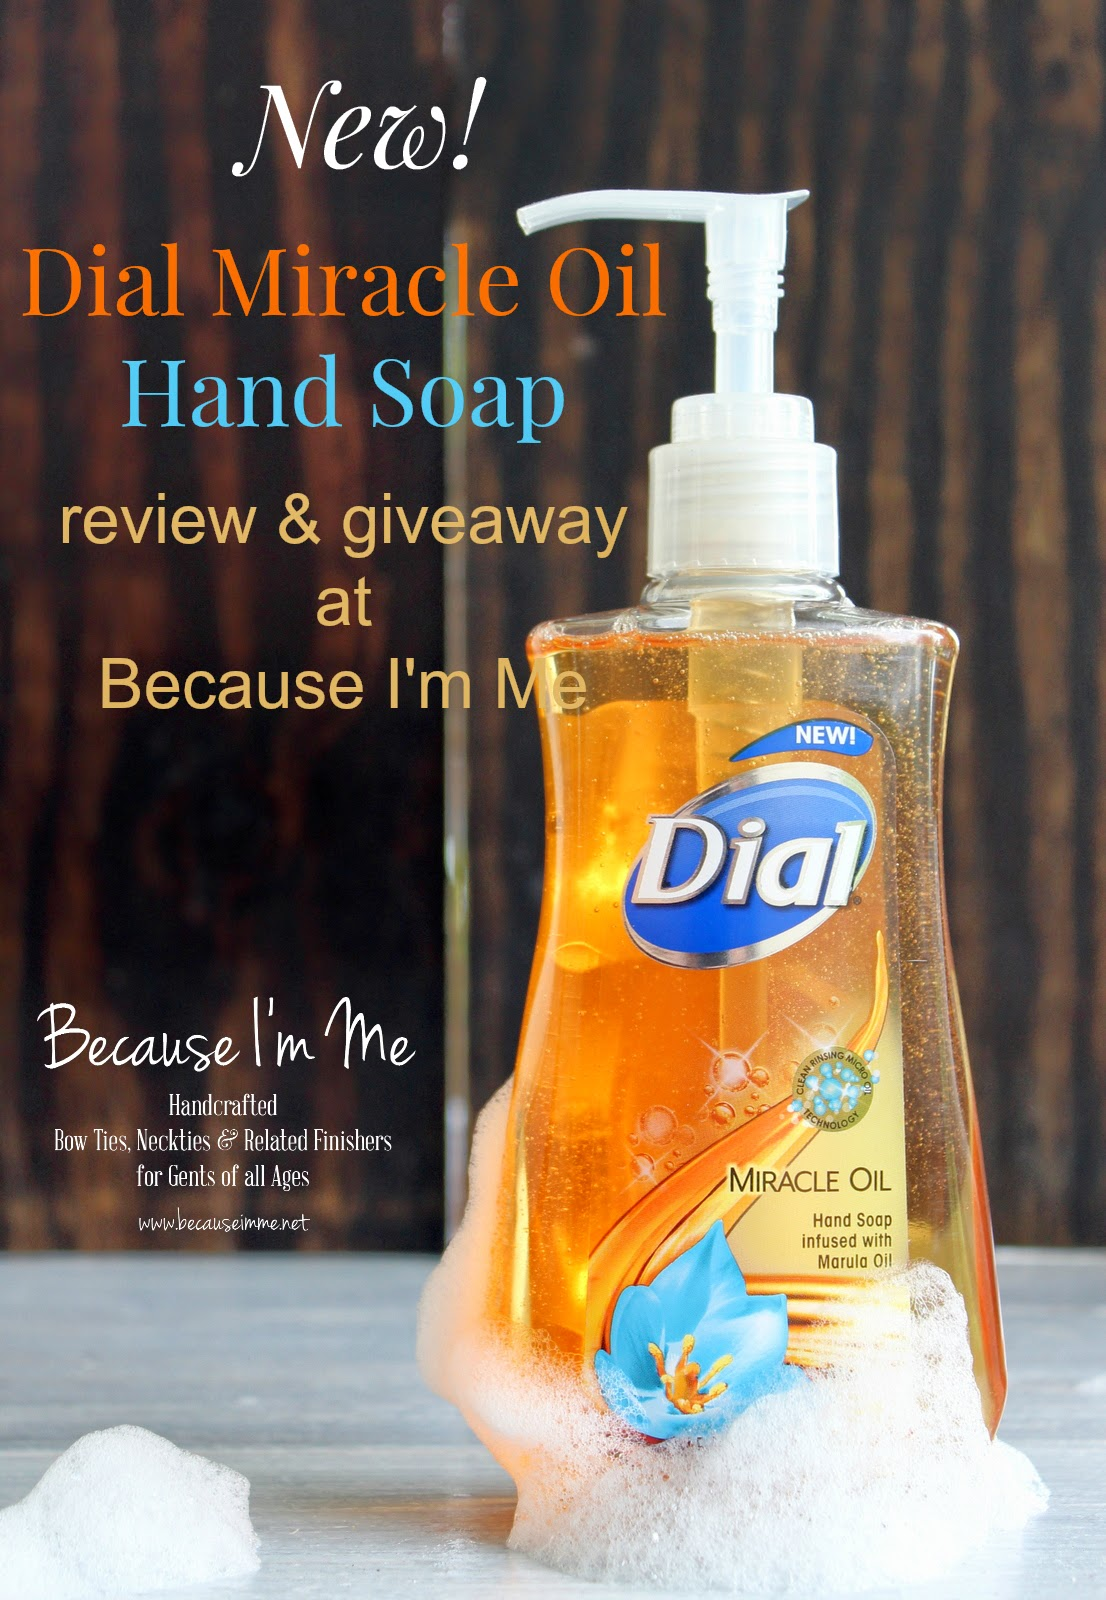 Dial Miracle Oil Hand Soap review and giveaway